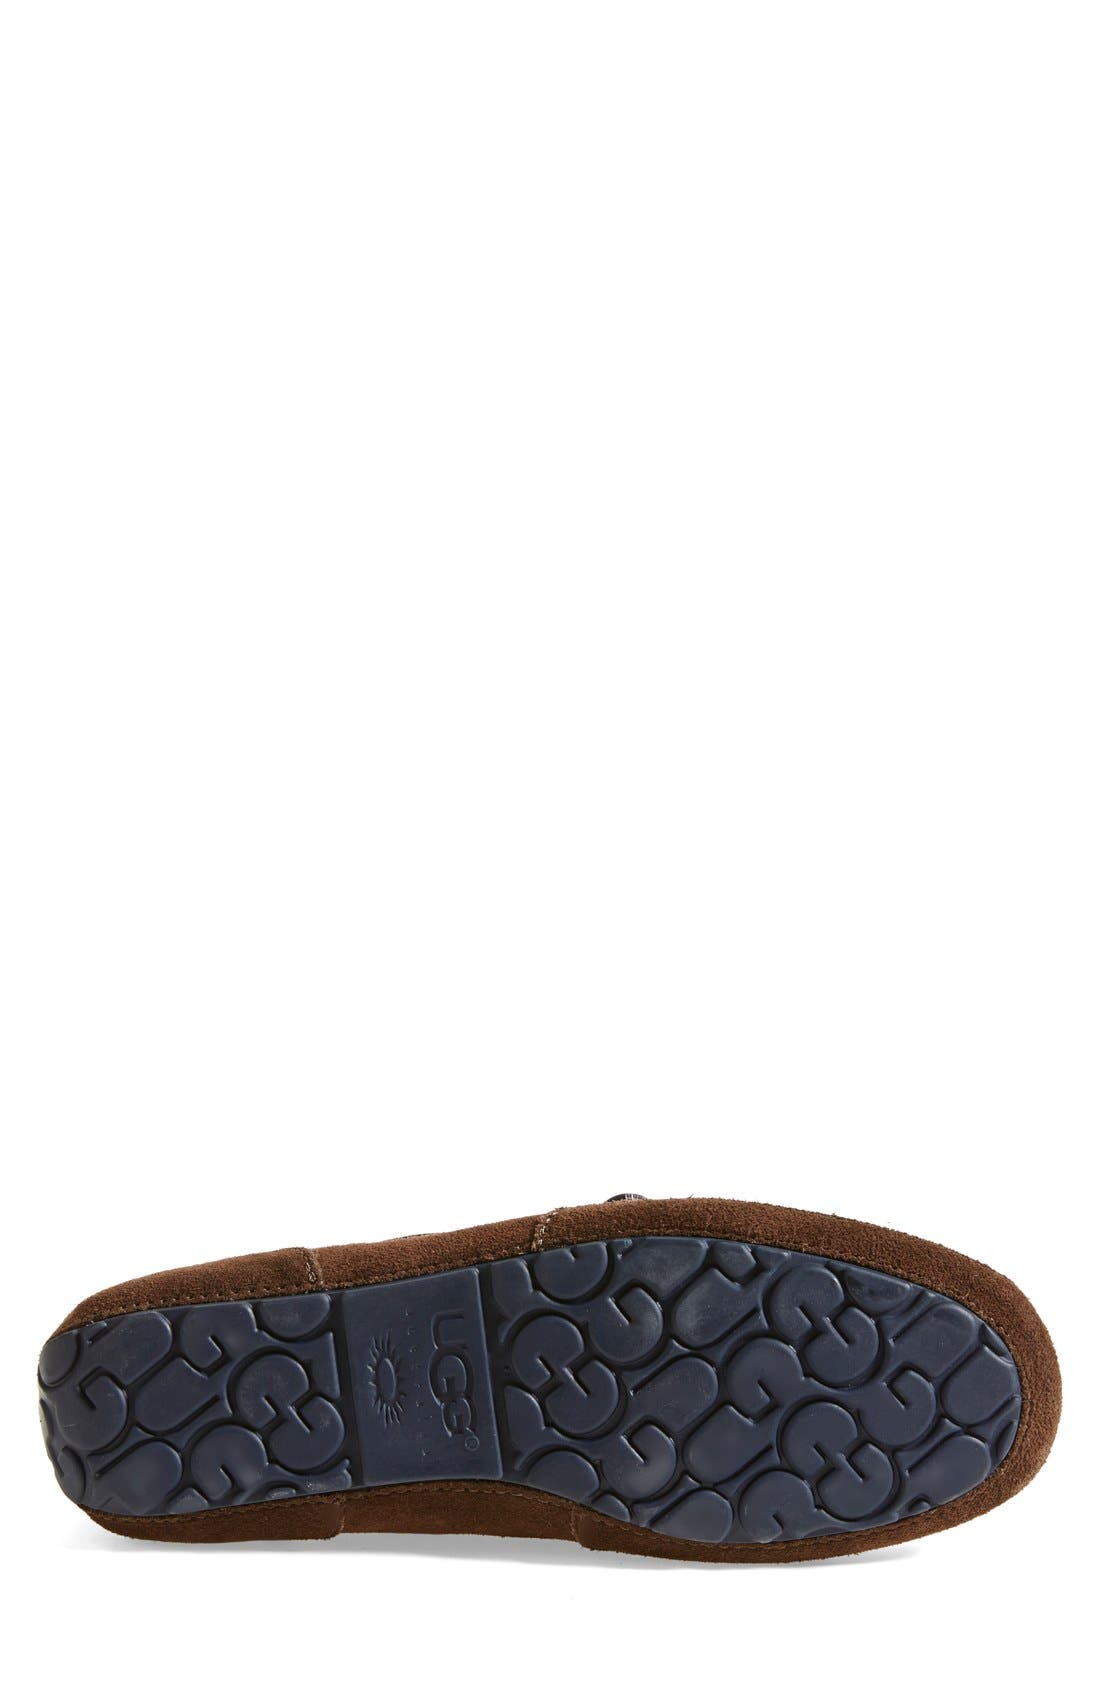 Alternate Image 4  - UGG® 'Chester' Driving Loafer (Men)